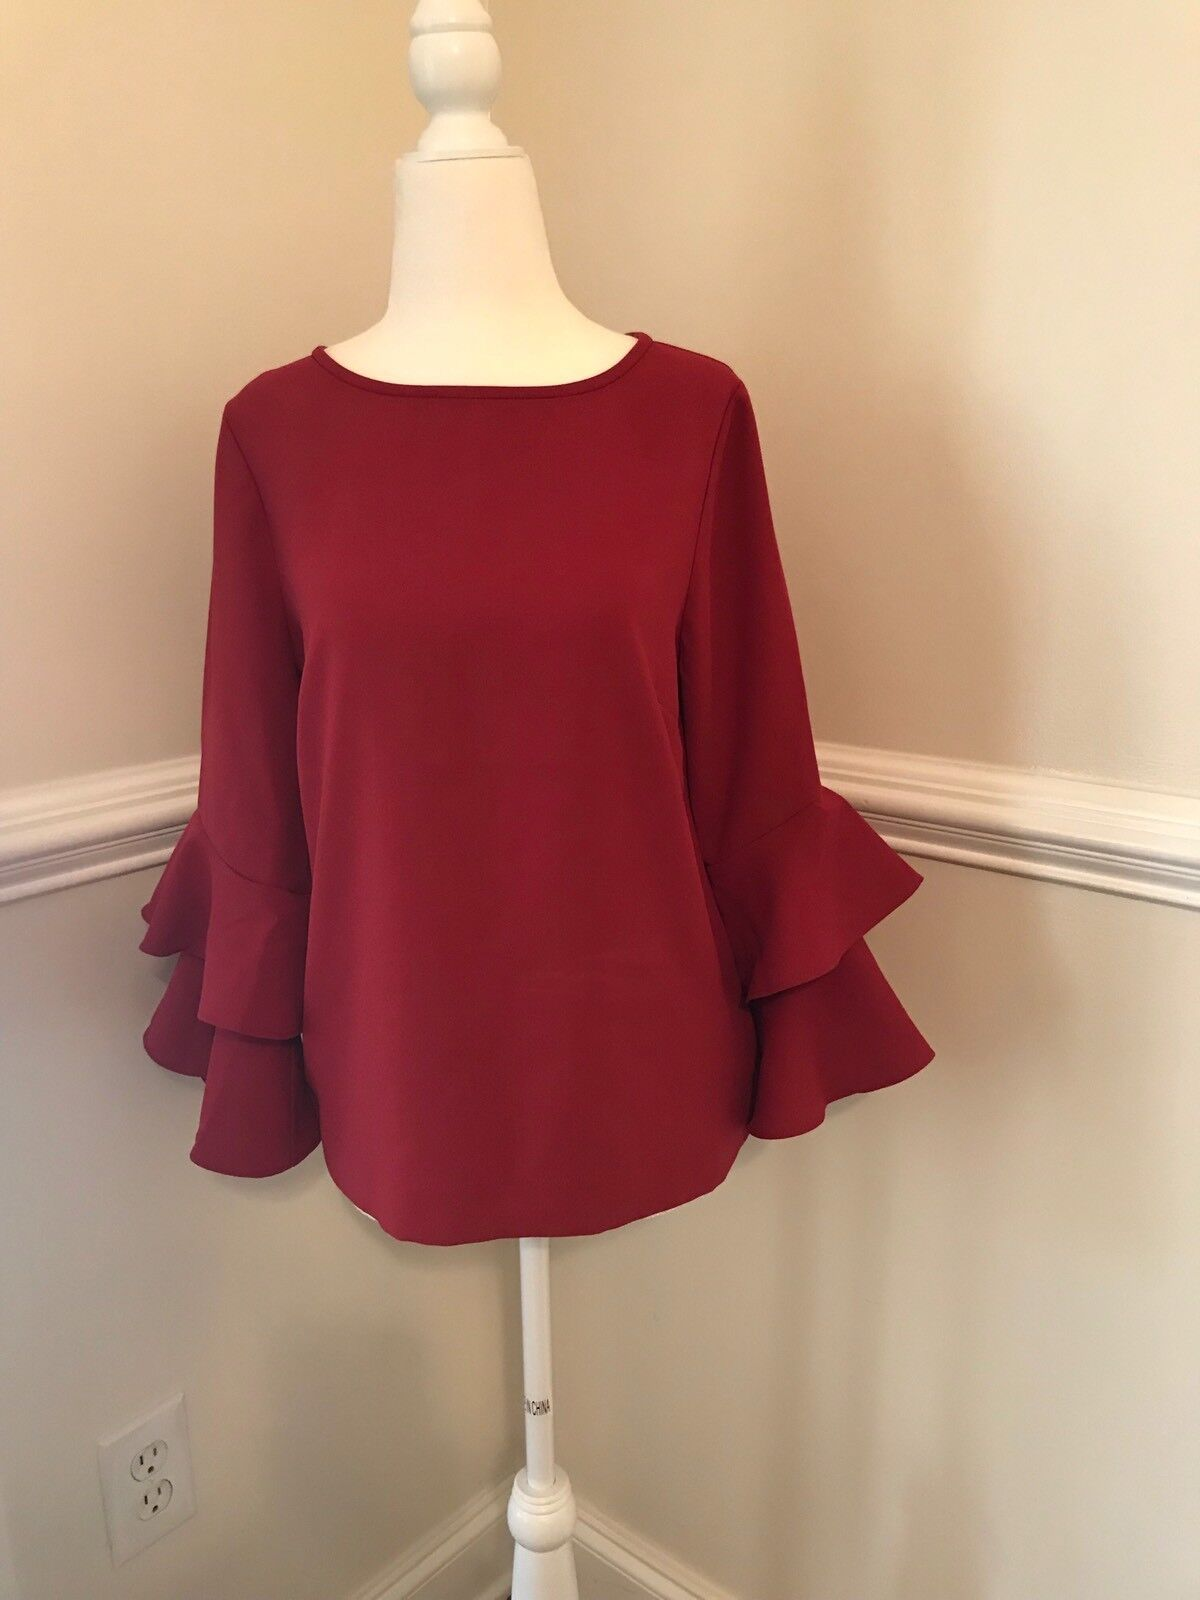 NEW J. CREW TIErot BELL-SLEEVE TOP IN DRAPEY CREPE SZ 4 BRIGHT CERISE rot  H2197